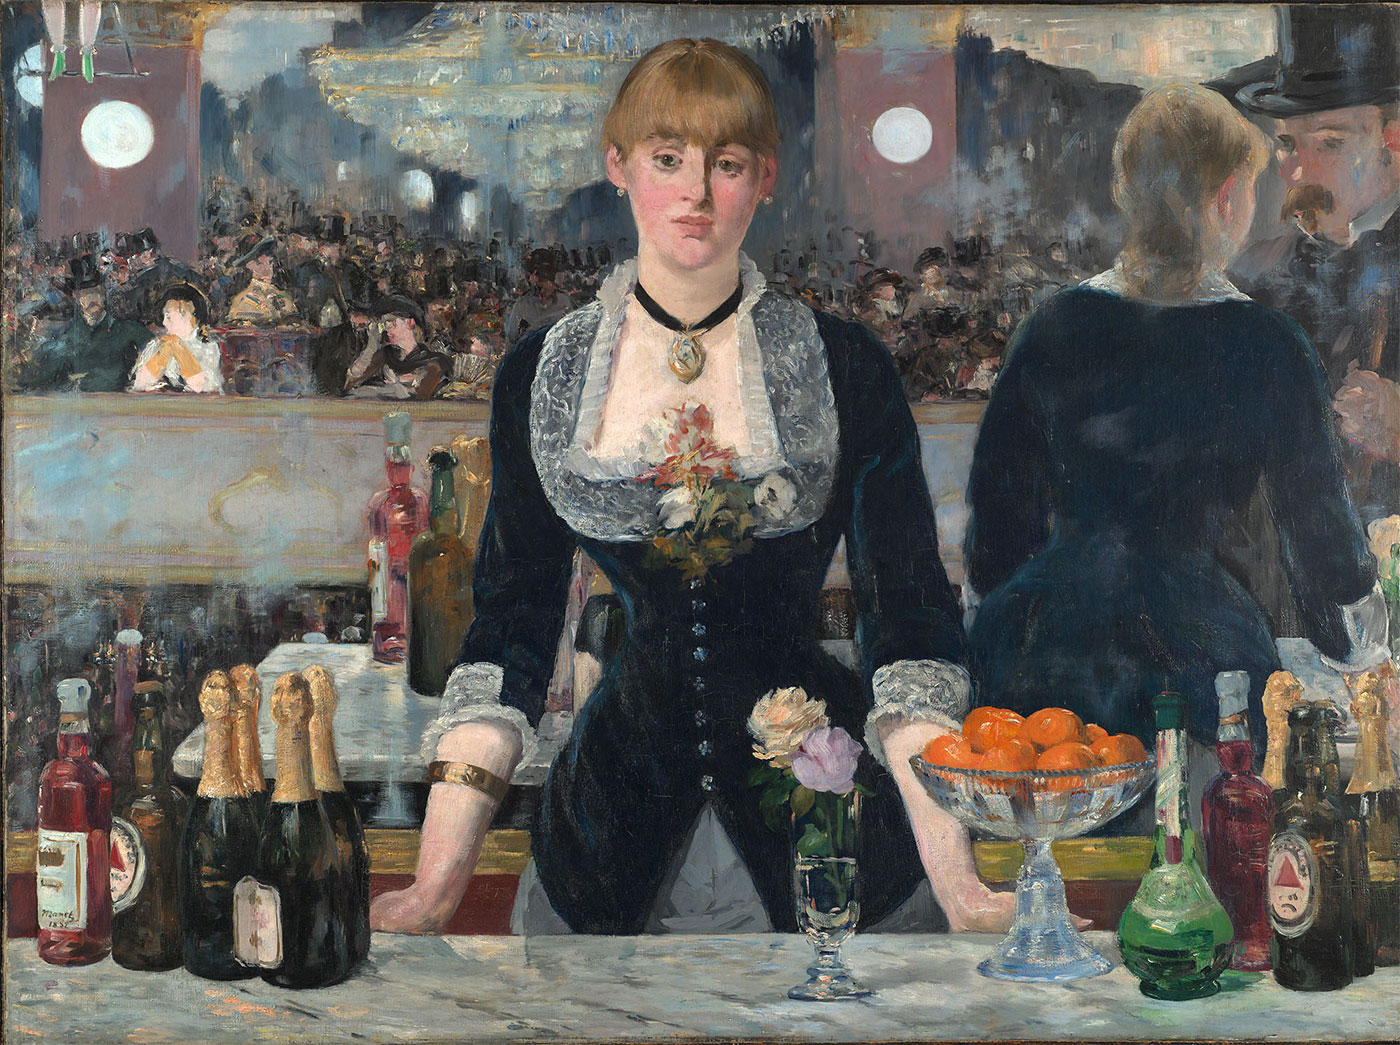 Édouard Manet bar painting Bass logo